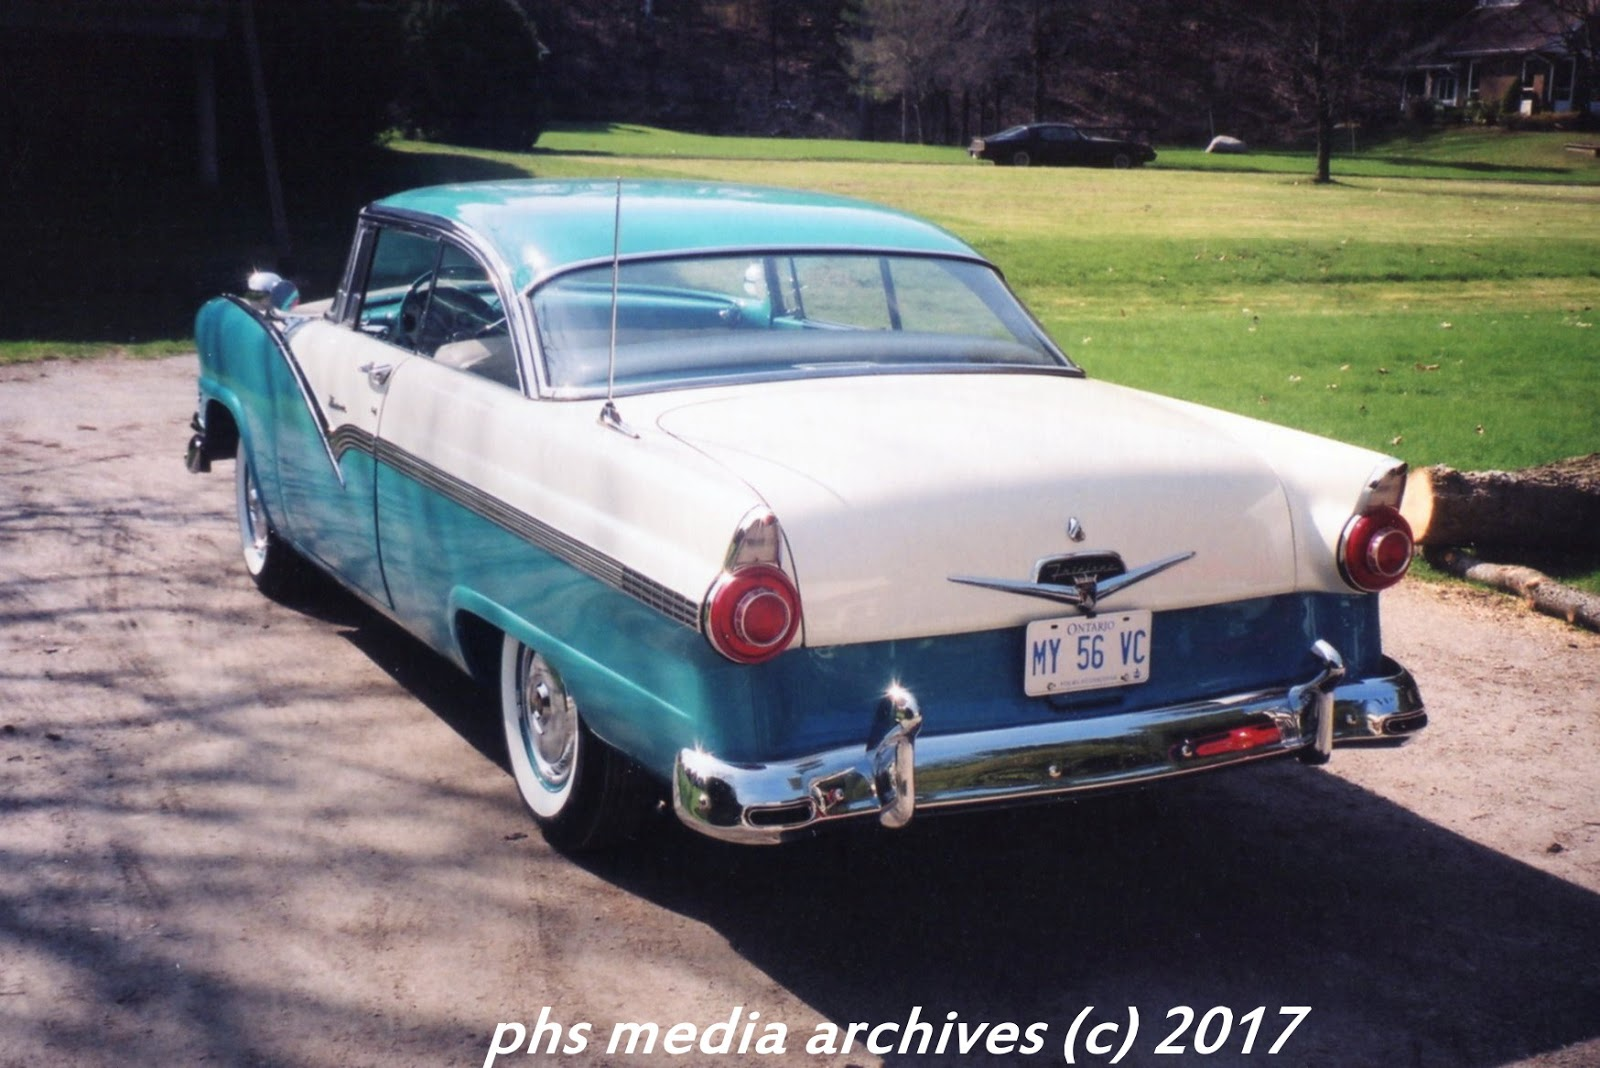 this restored example was left with a clean rear, most cars didn't get   american classic: 1956 ford fairlane